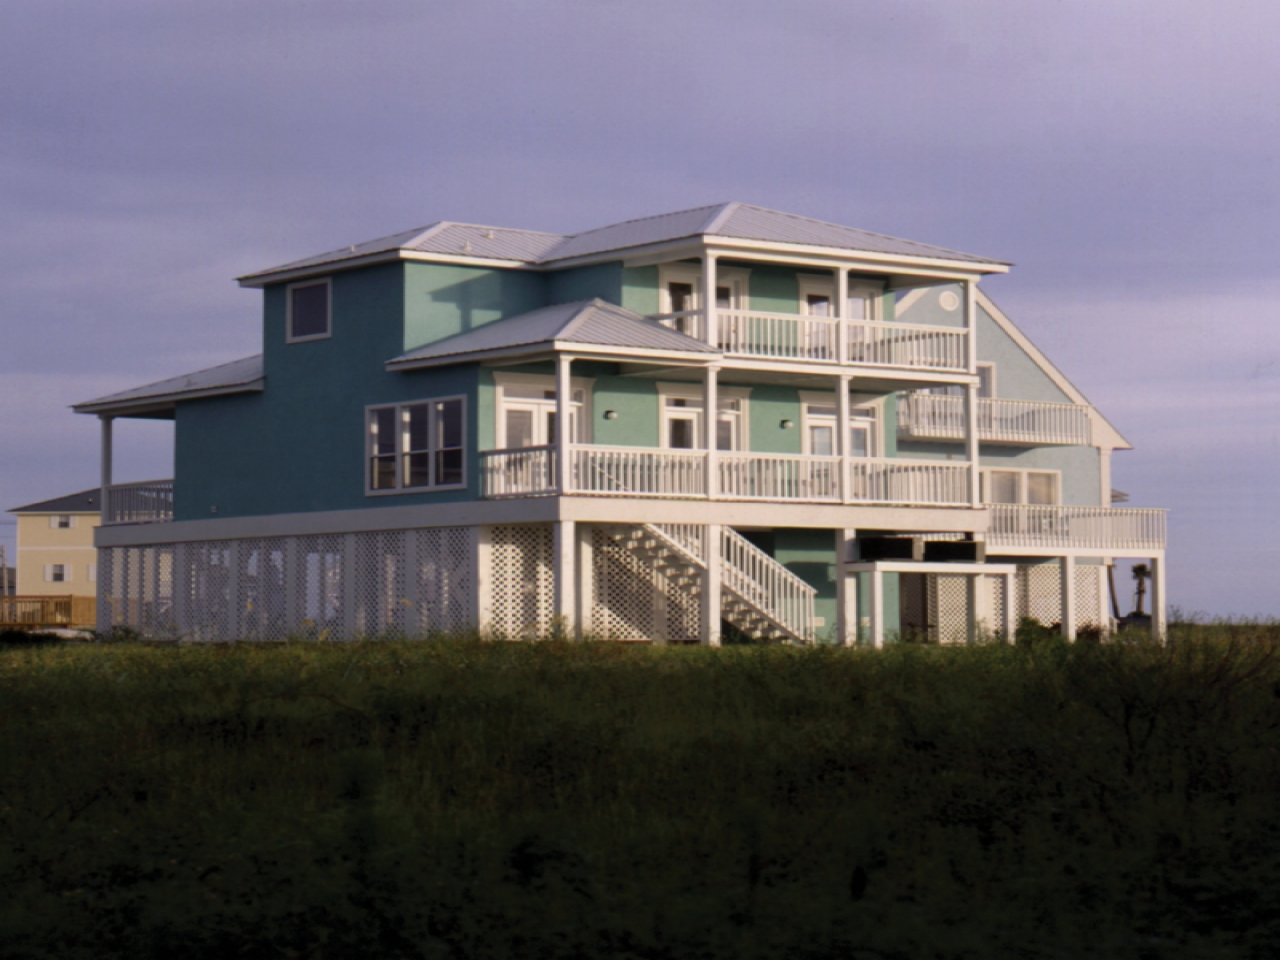 Beach style house designs home plans raised beach house for Ranch style beach house